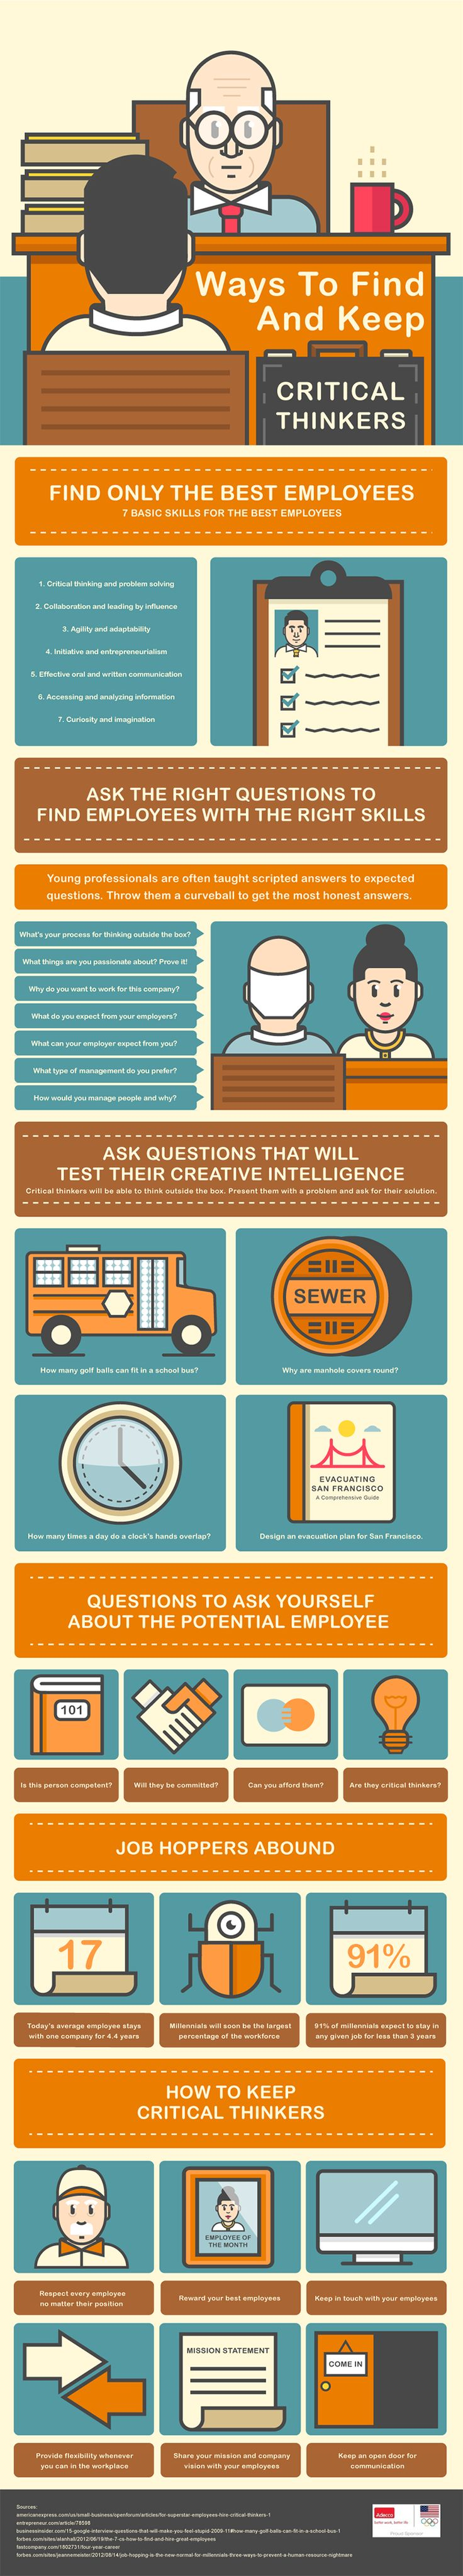 Unique Infographic Design, Ways To Find And Keep Critical Thinkers #Infographic #Design (http://www.pinterest.com/aldenchong/)